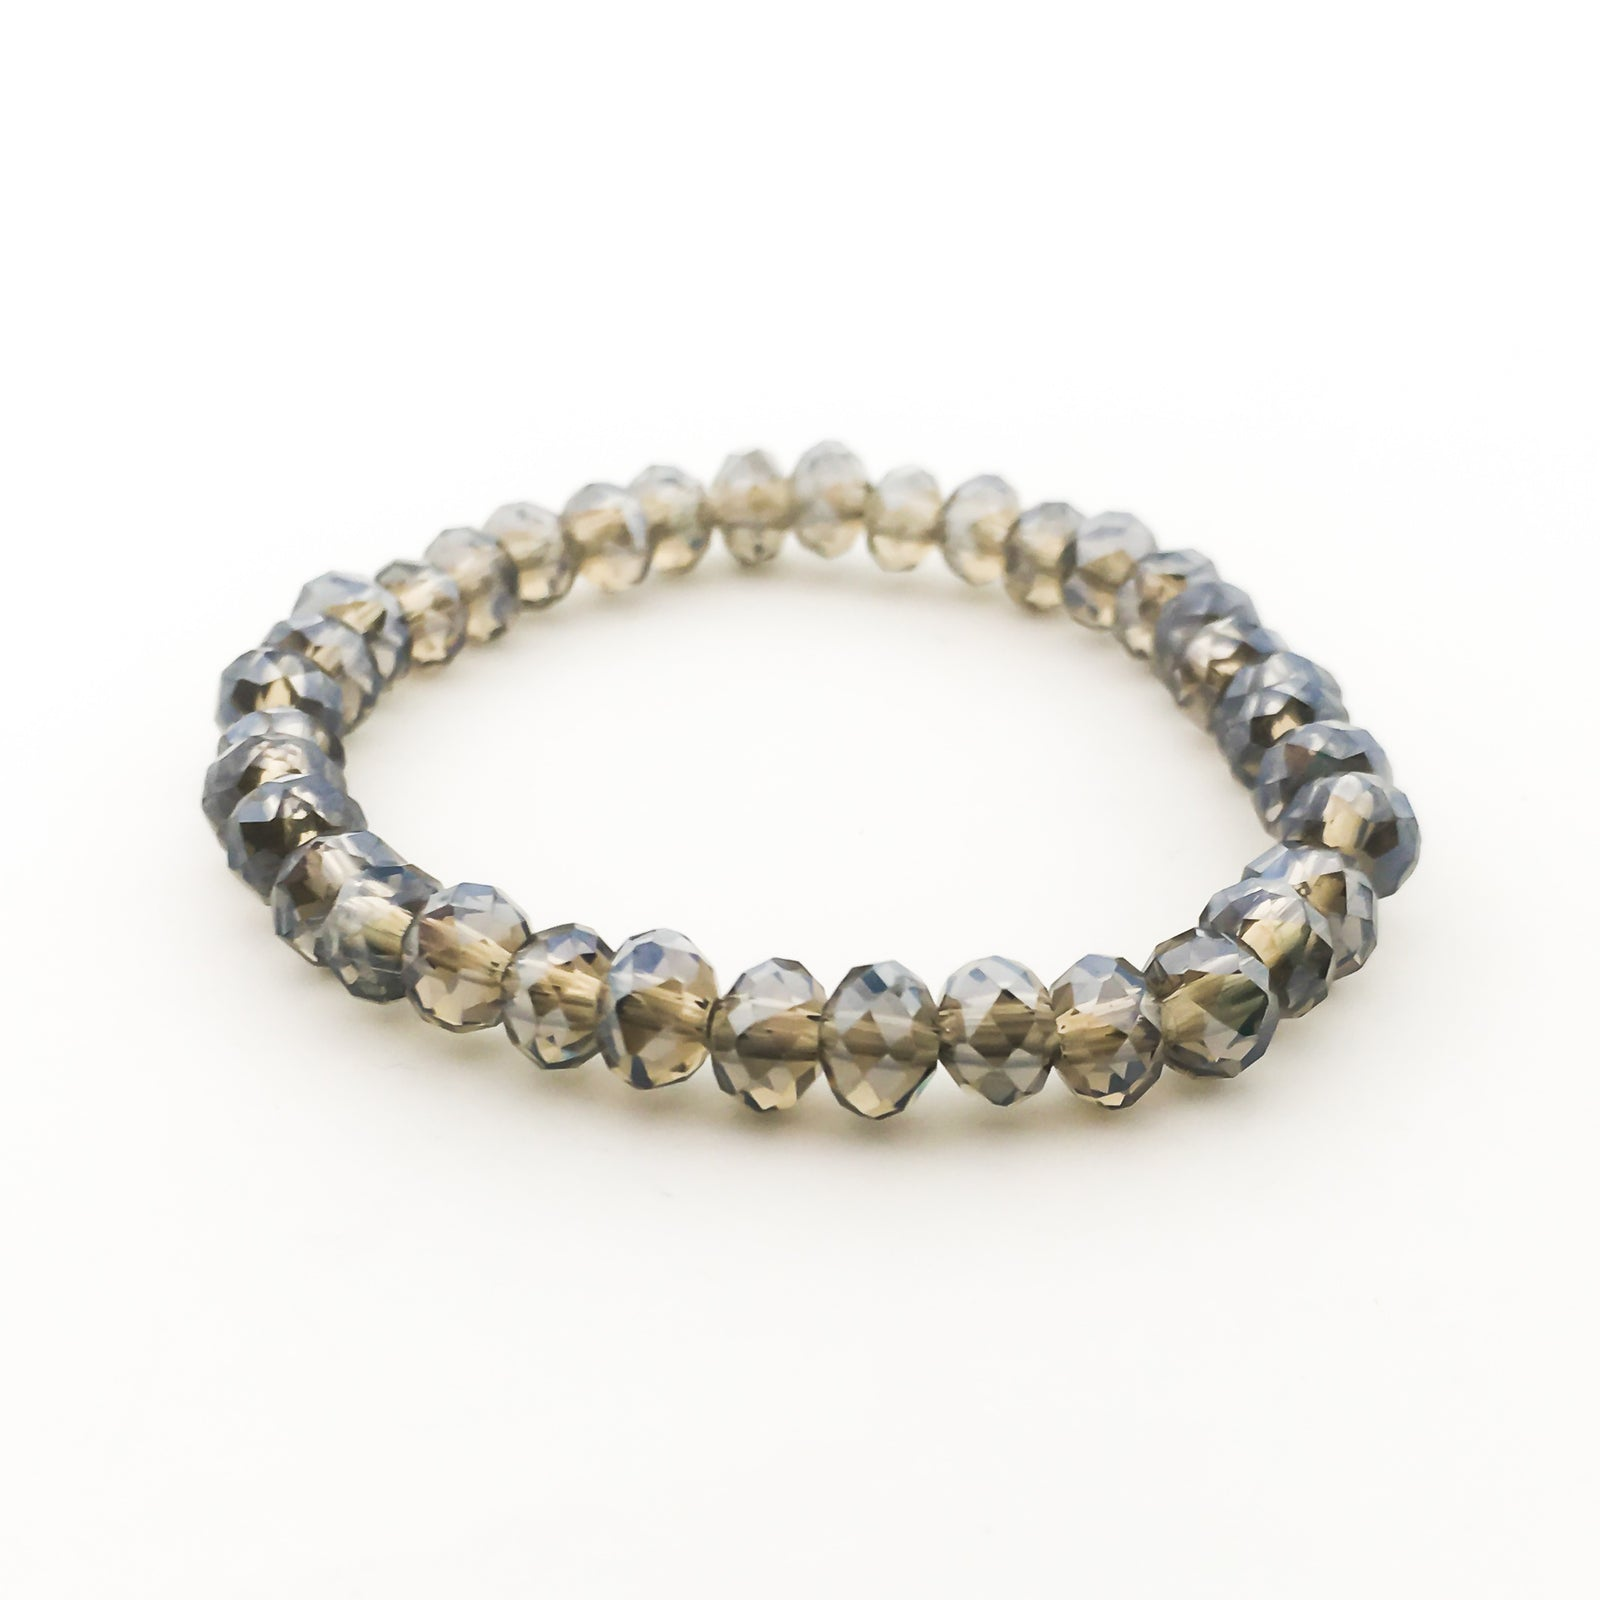 CRYSTAL BRACELETS | 6MM | CLEAR COLOR OPTIONS